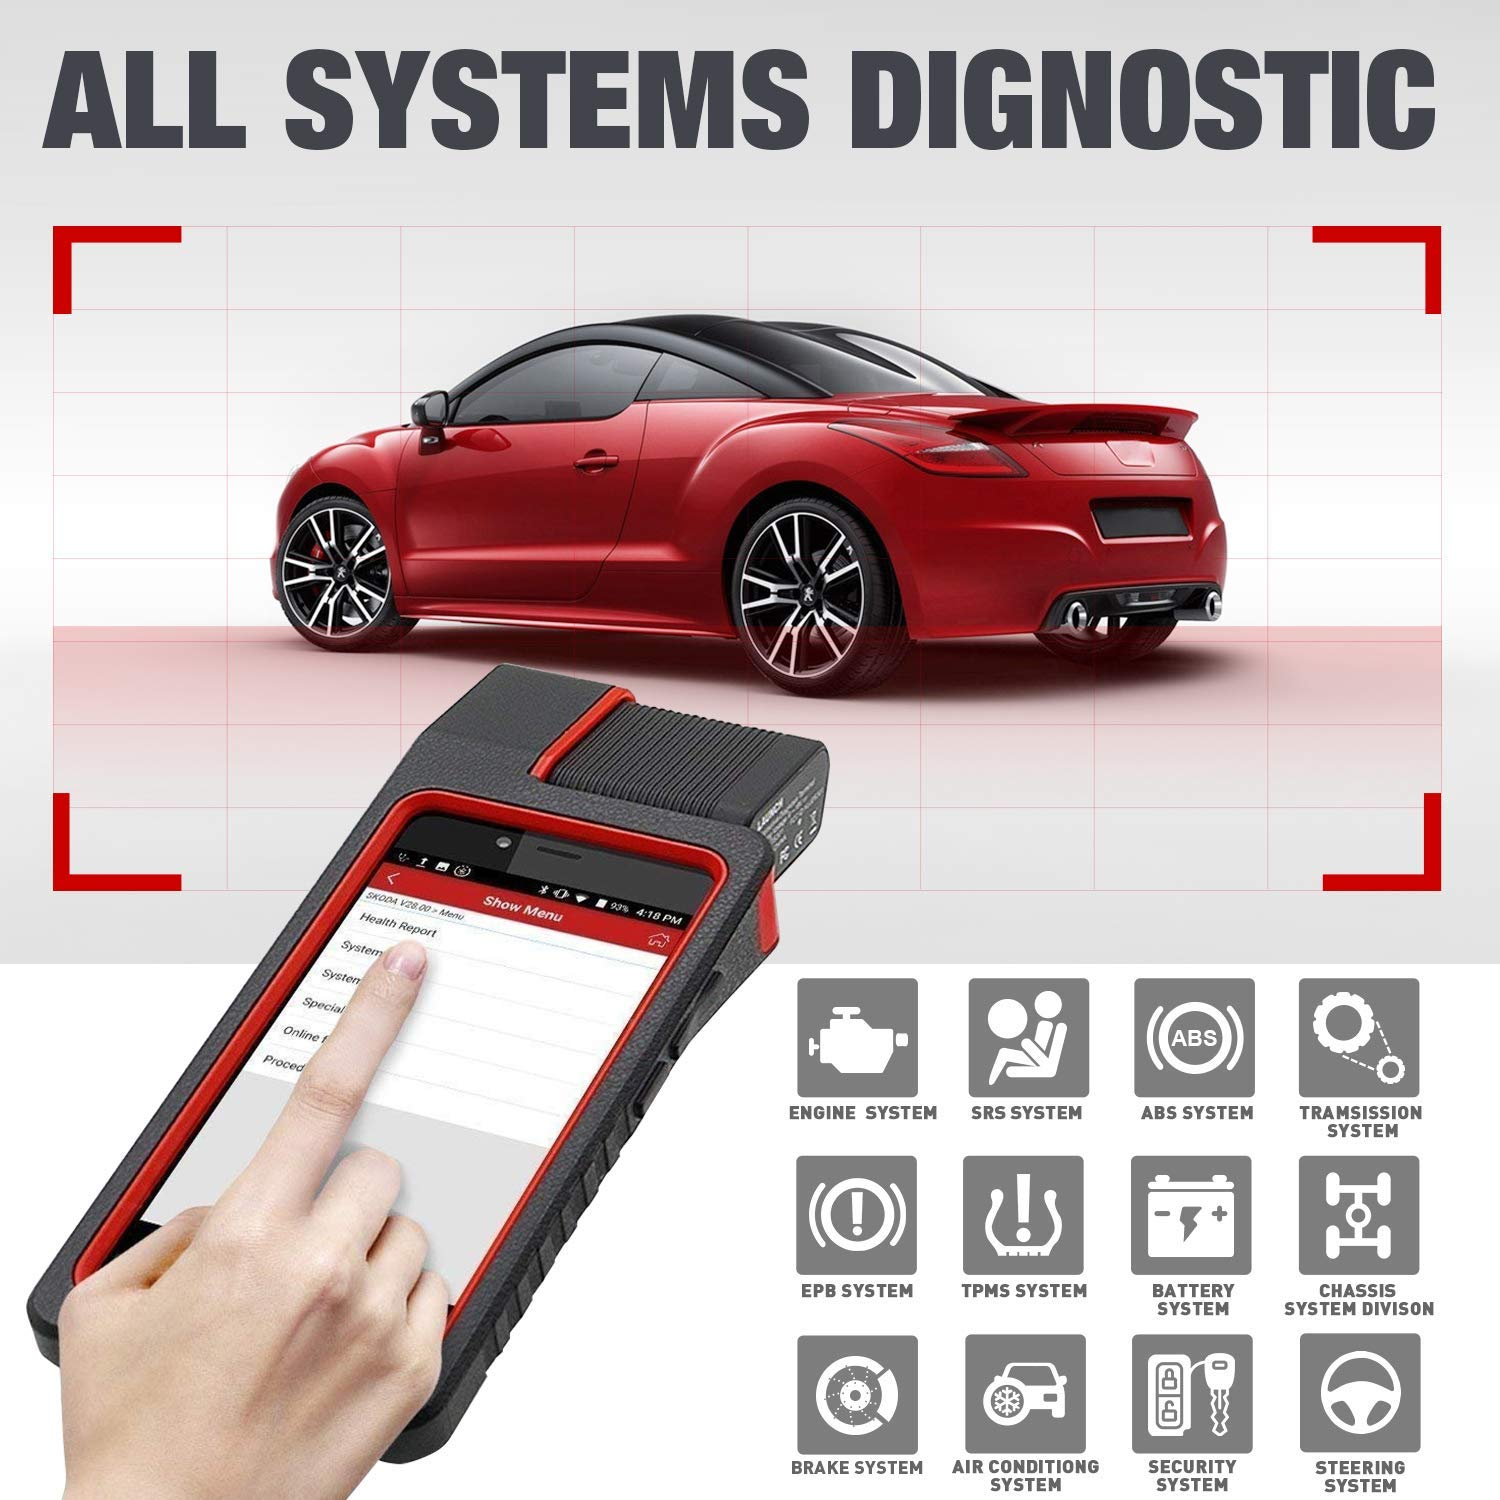 Amazon.com: LAUNCH X431 DIAGUN IV WiFi/Bluetooth OBD2 Scanner Auto Full System Diagnostic Tool Support ECU Coding,Actuation Test,Remote Diagnostic 11 Reset ...